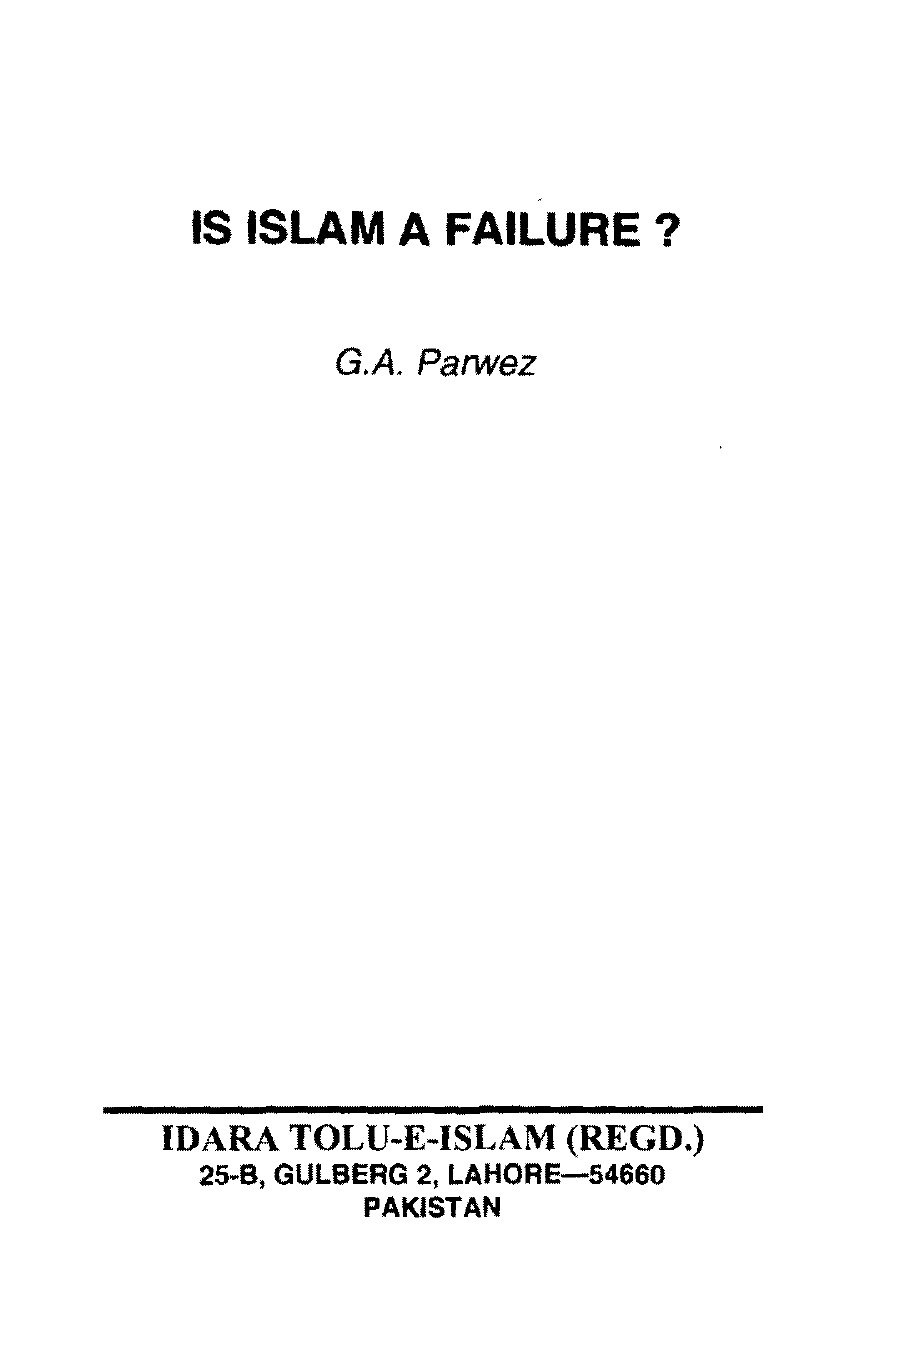 Is-Islam-is-a-failure